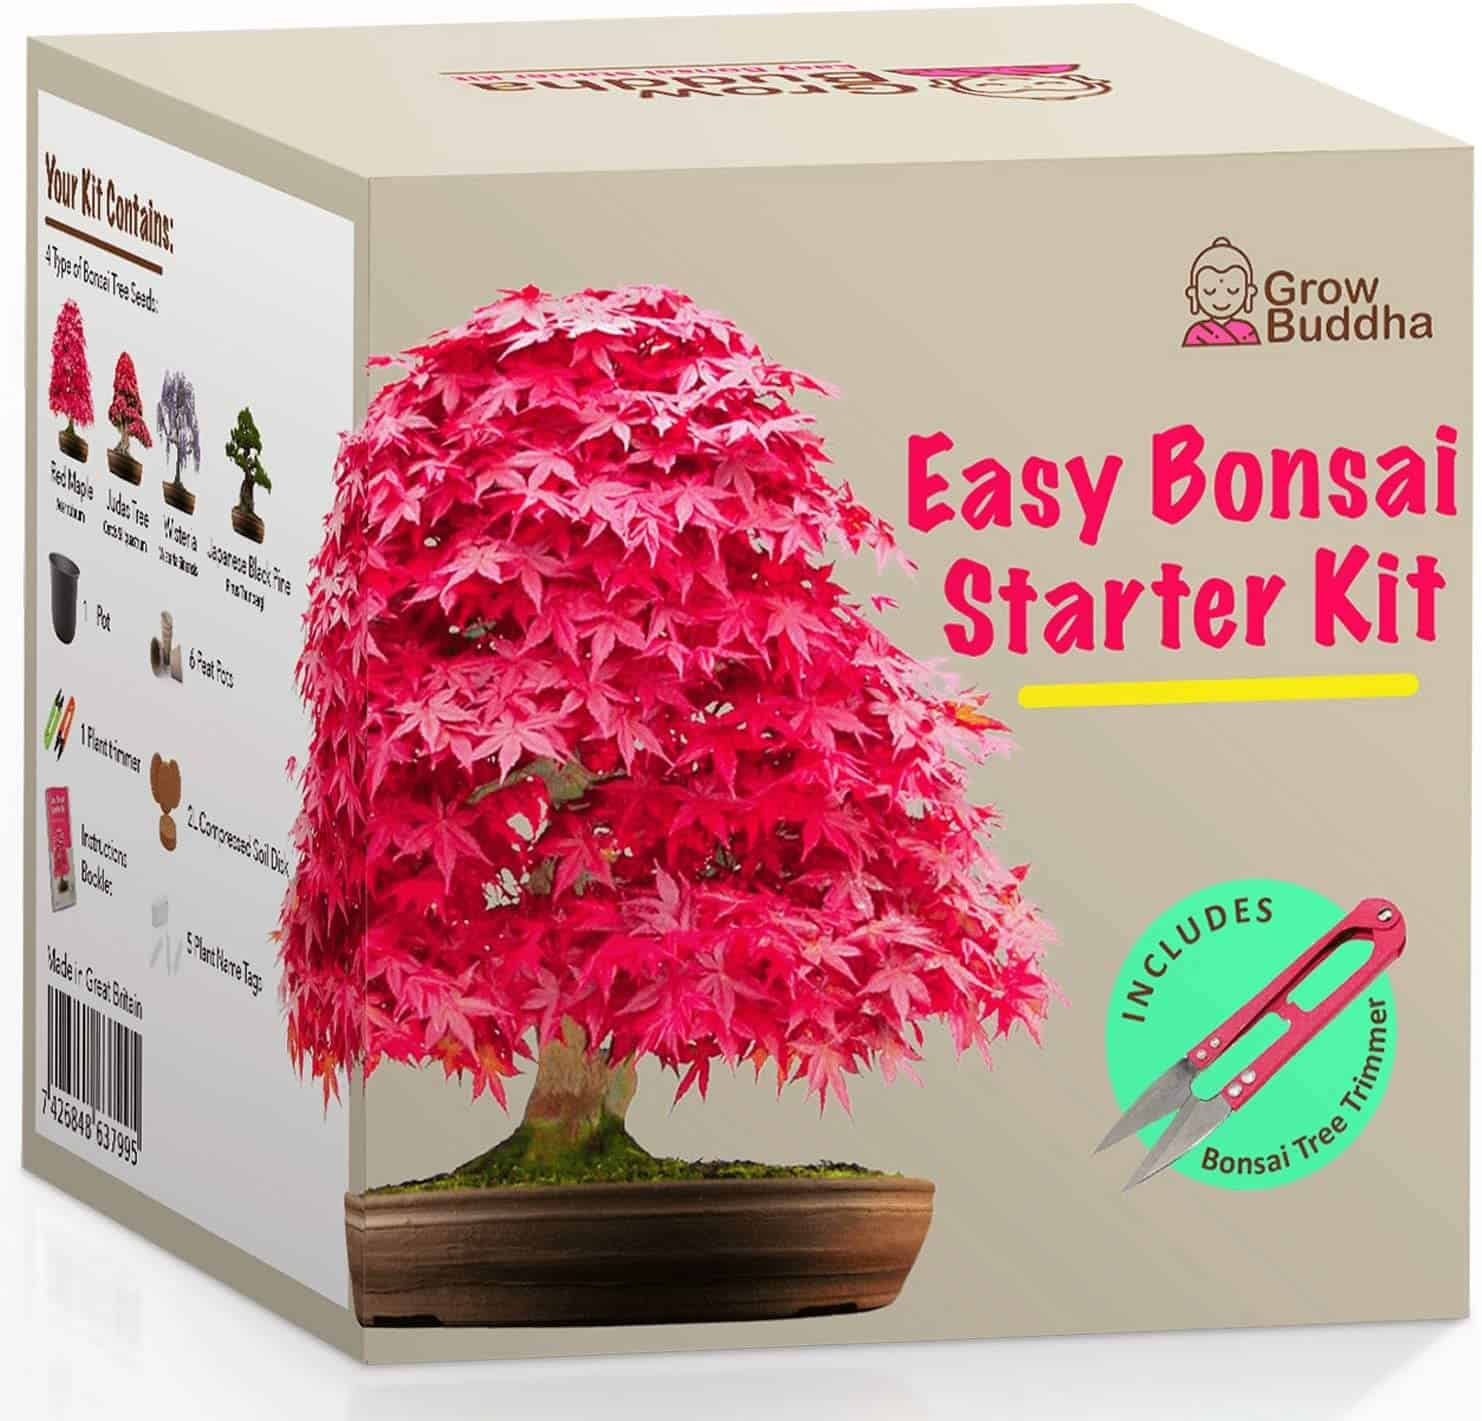 One Bonsai Starter Kit in a box included a tree trimmer